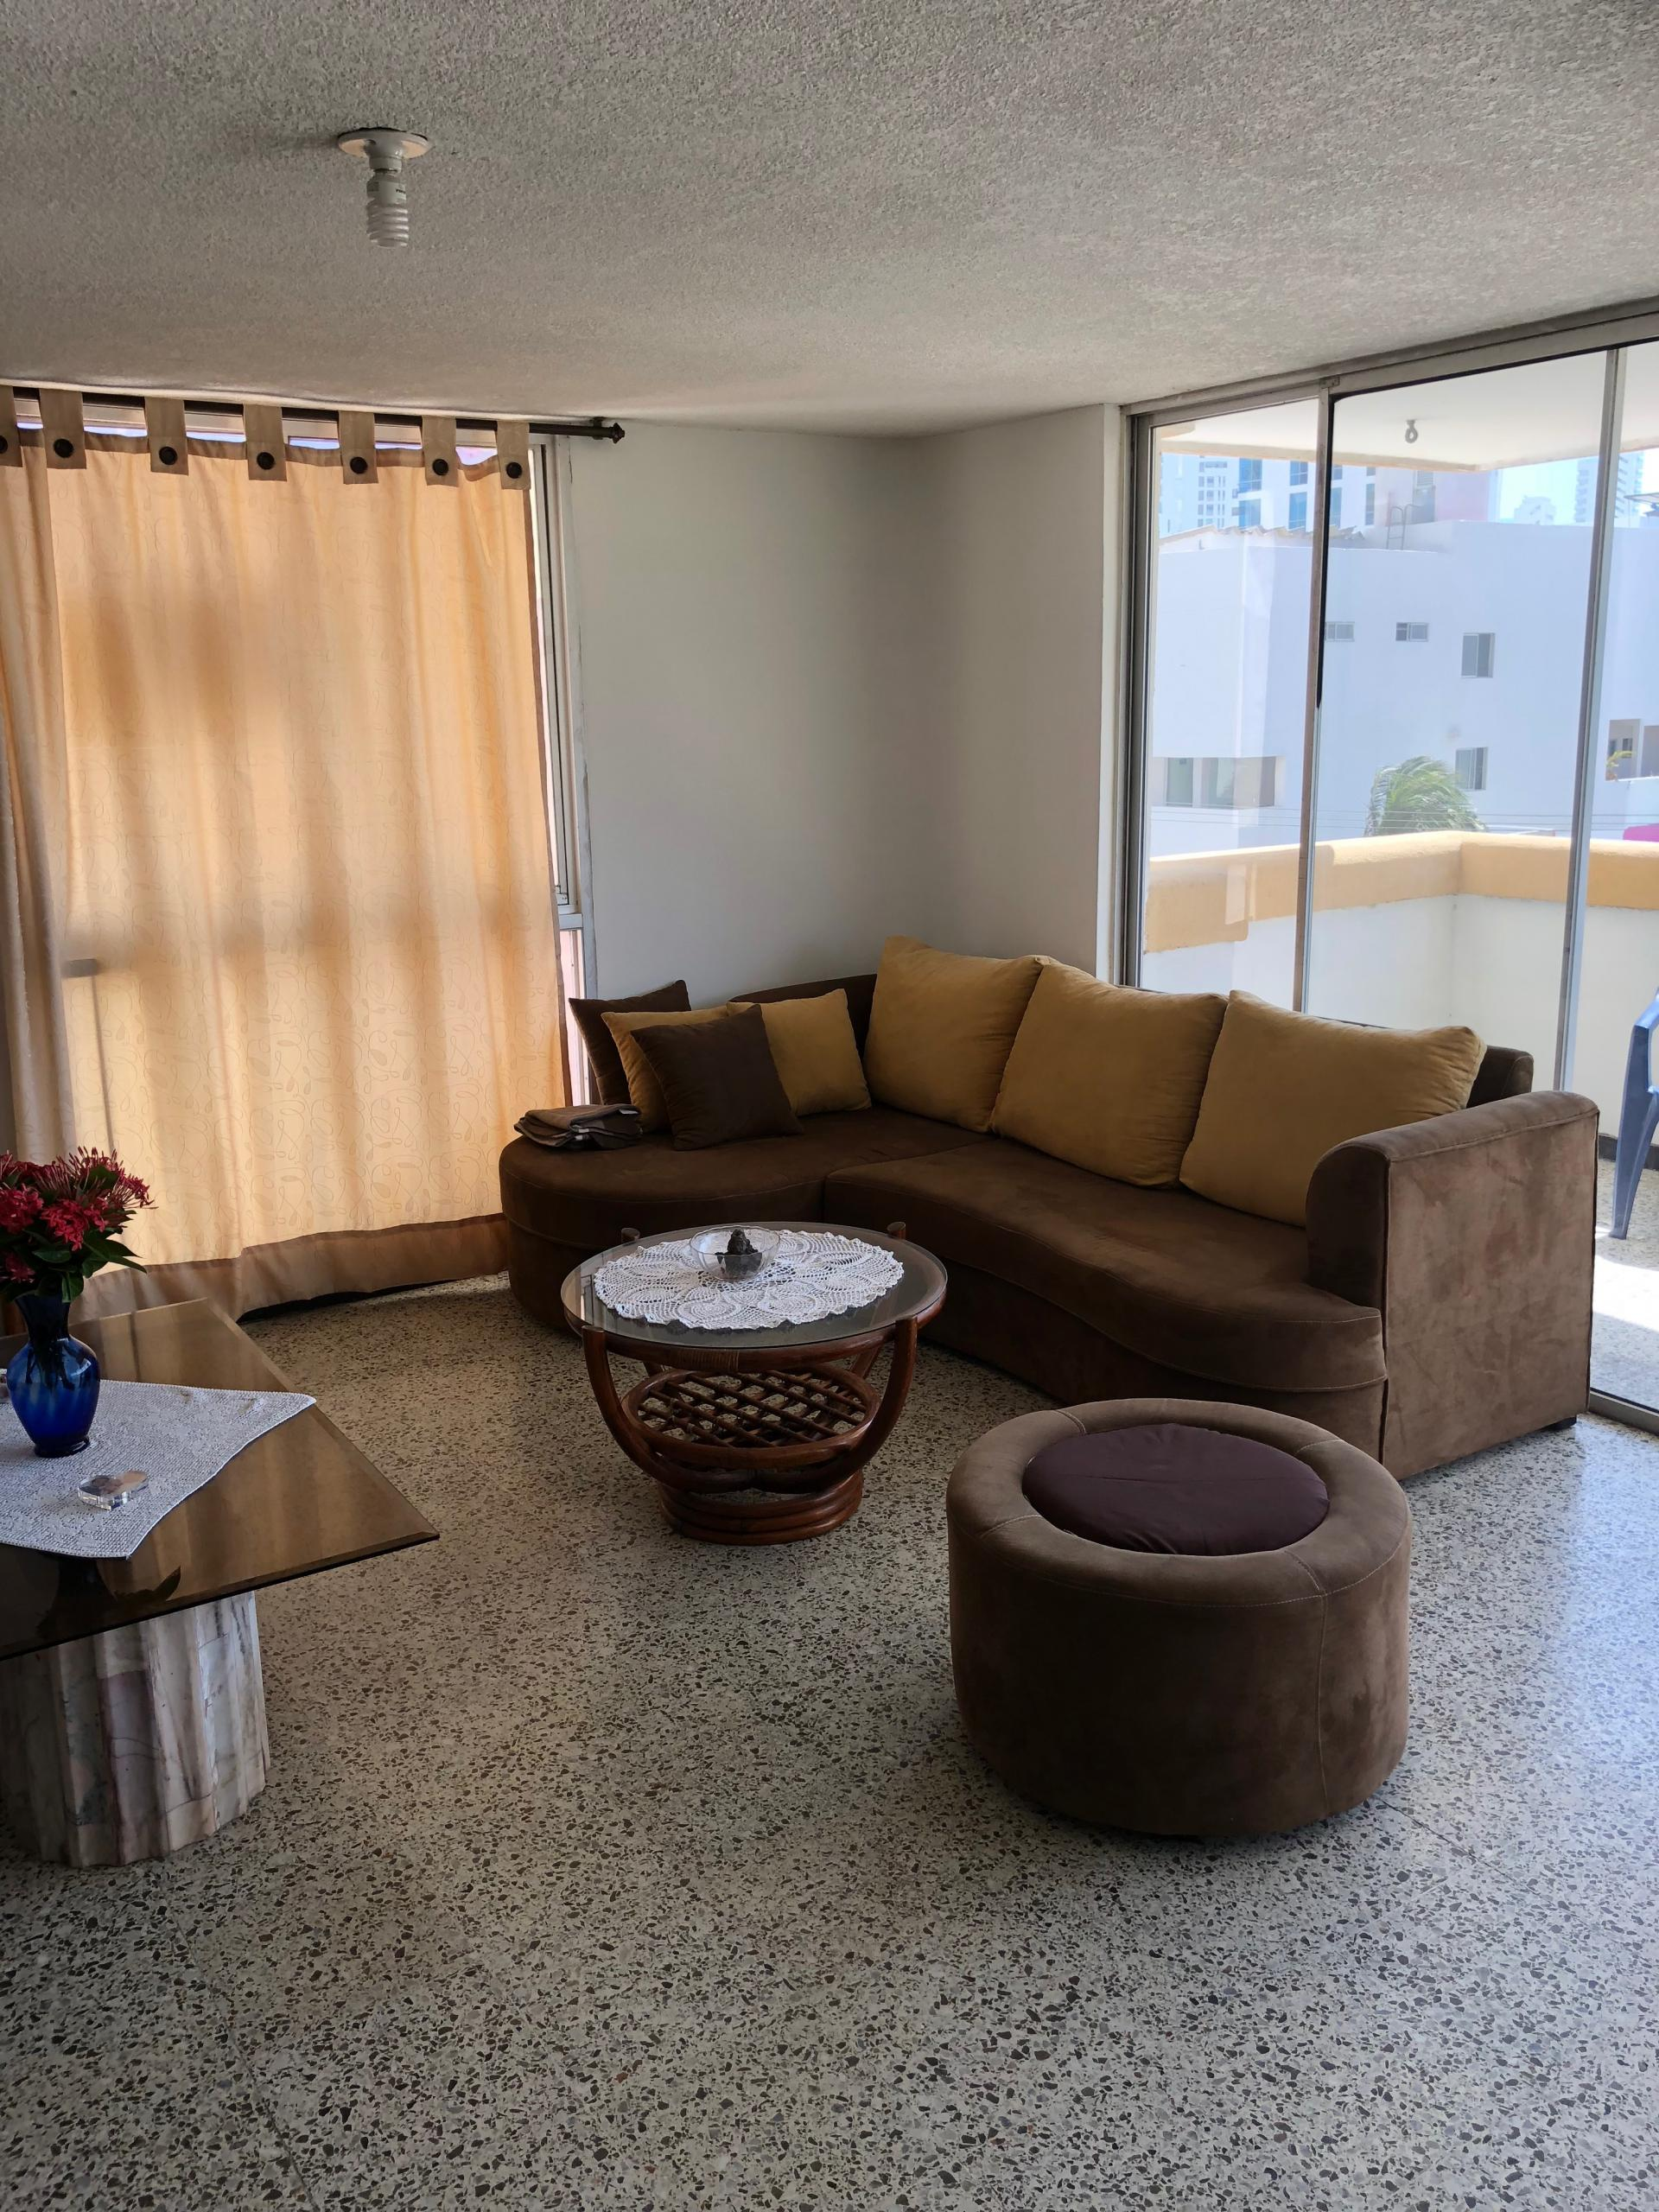 Cartagena Bocagrande Great Price For This Large Family Apartment